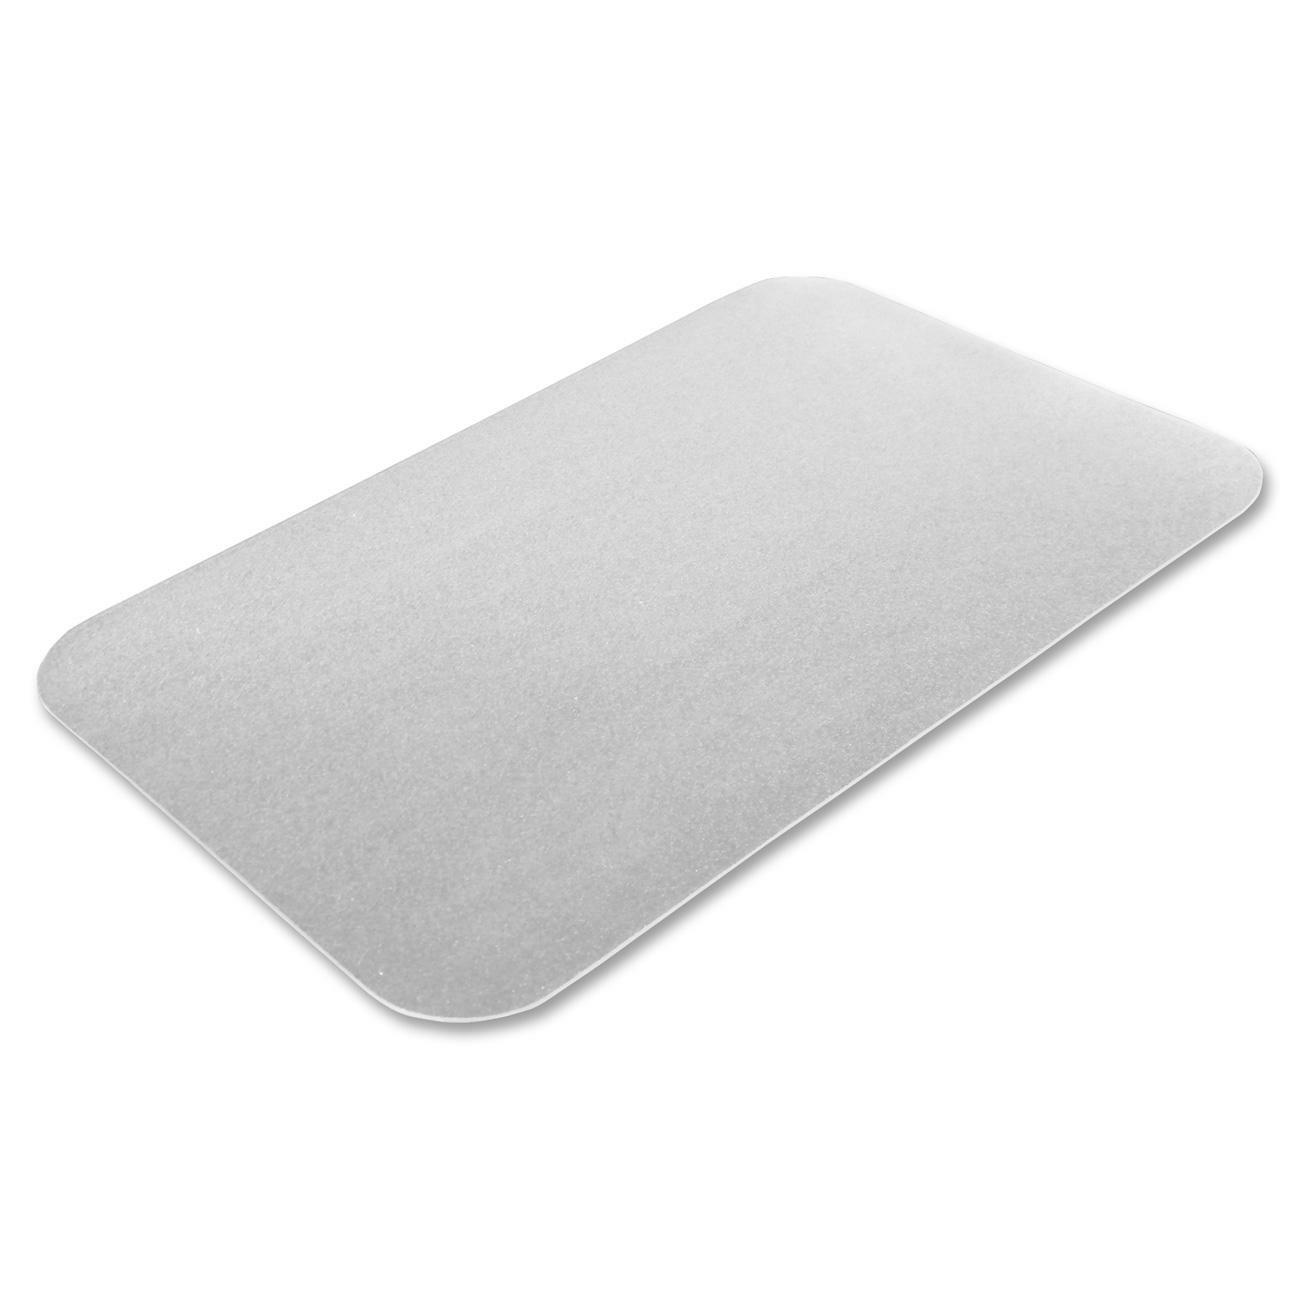 Rectangular Heat Resistant Desk Pad Features A Tough Durable Material That Protects Your From Scratches Scuffs And Spills Design Includes Lightly